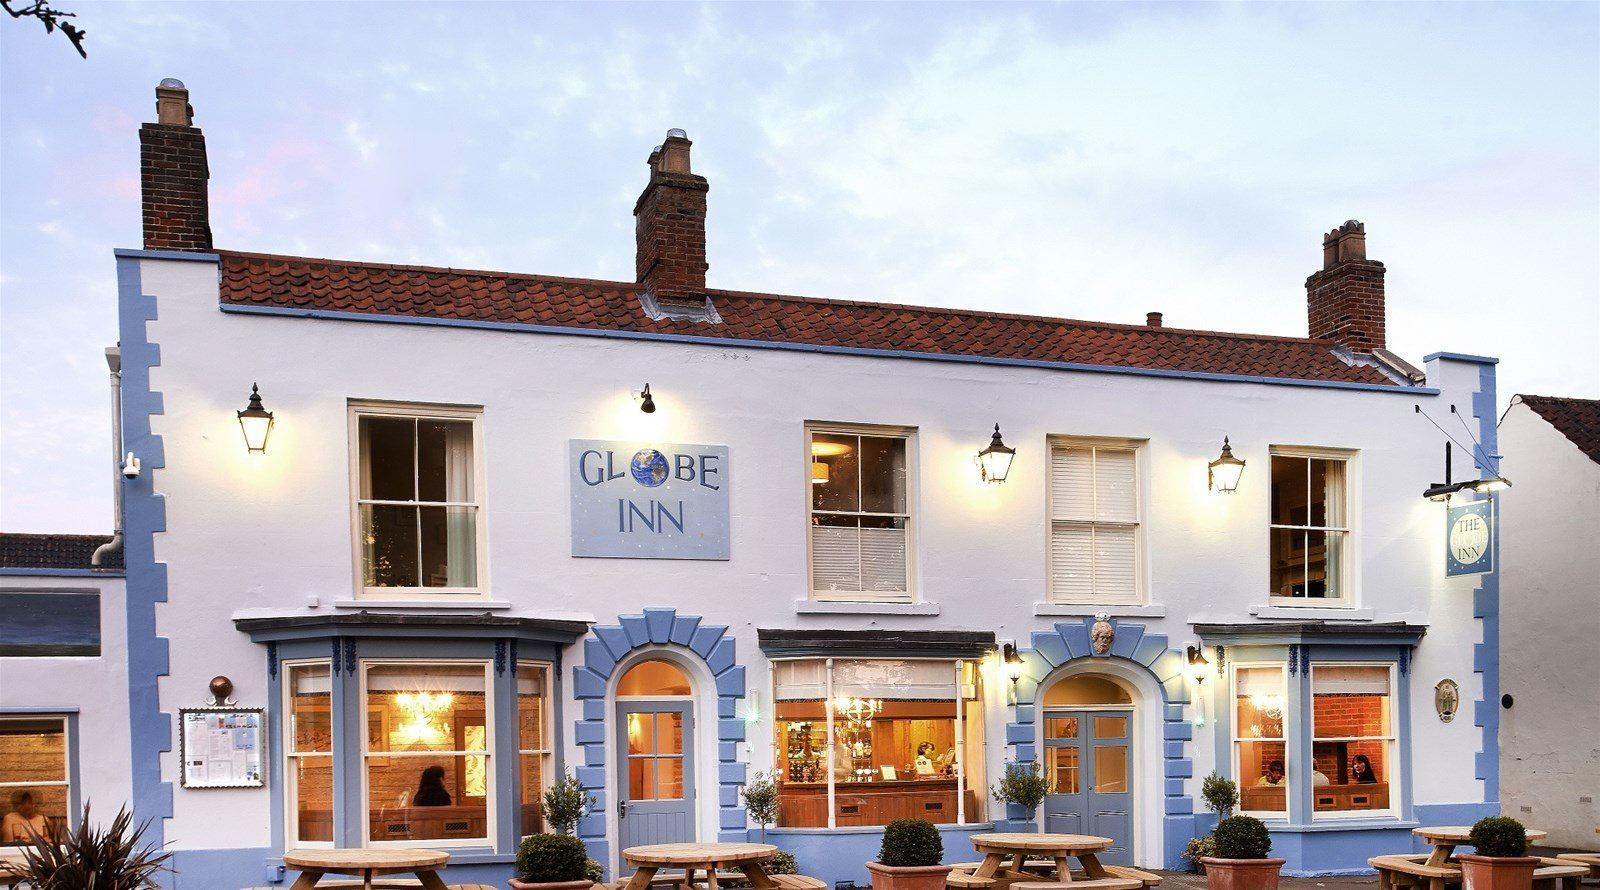 The_Globe_Inn_Wells-next-the-Sea_North_Norfolk12may16115119